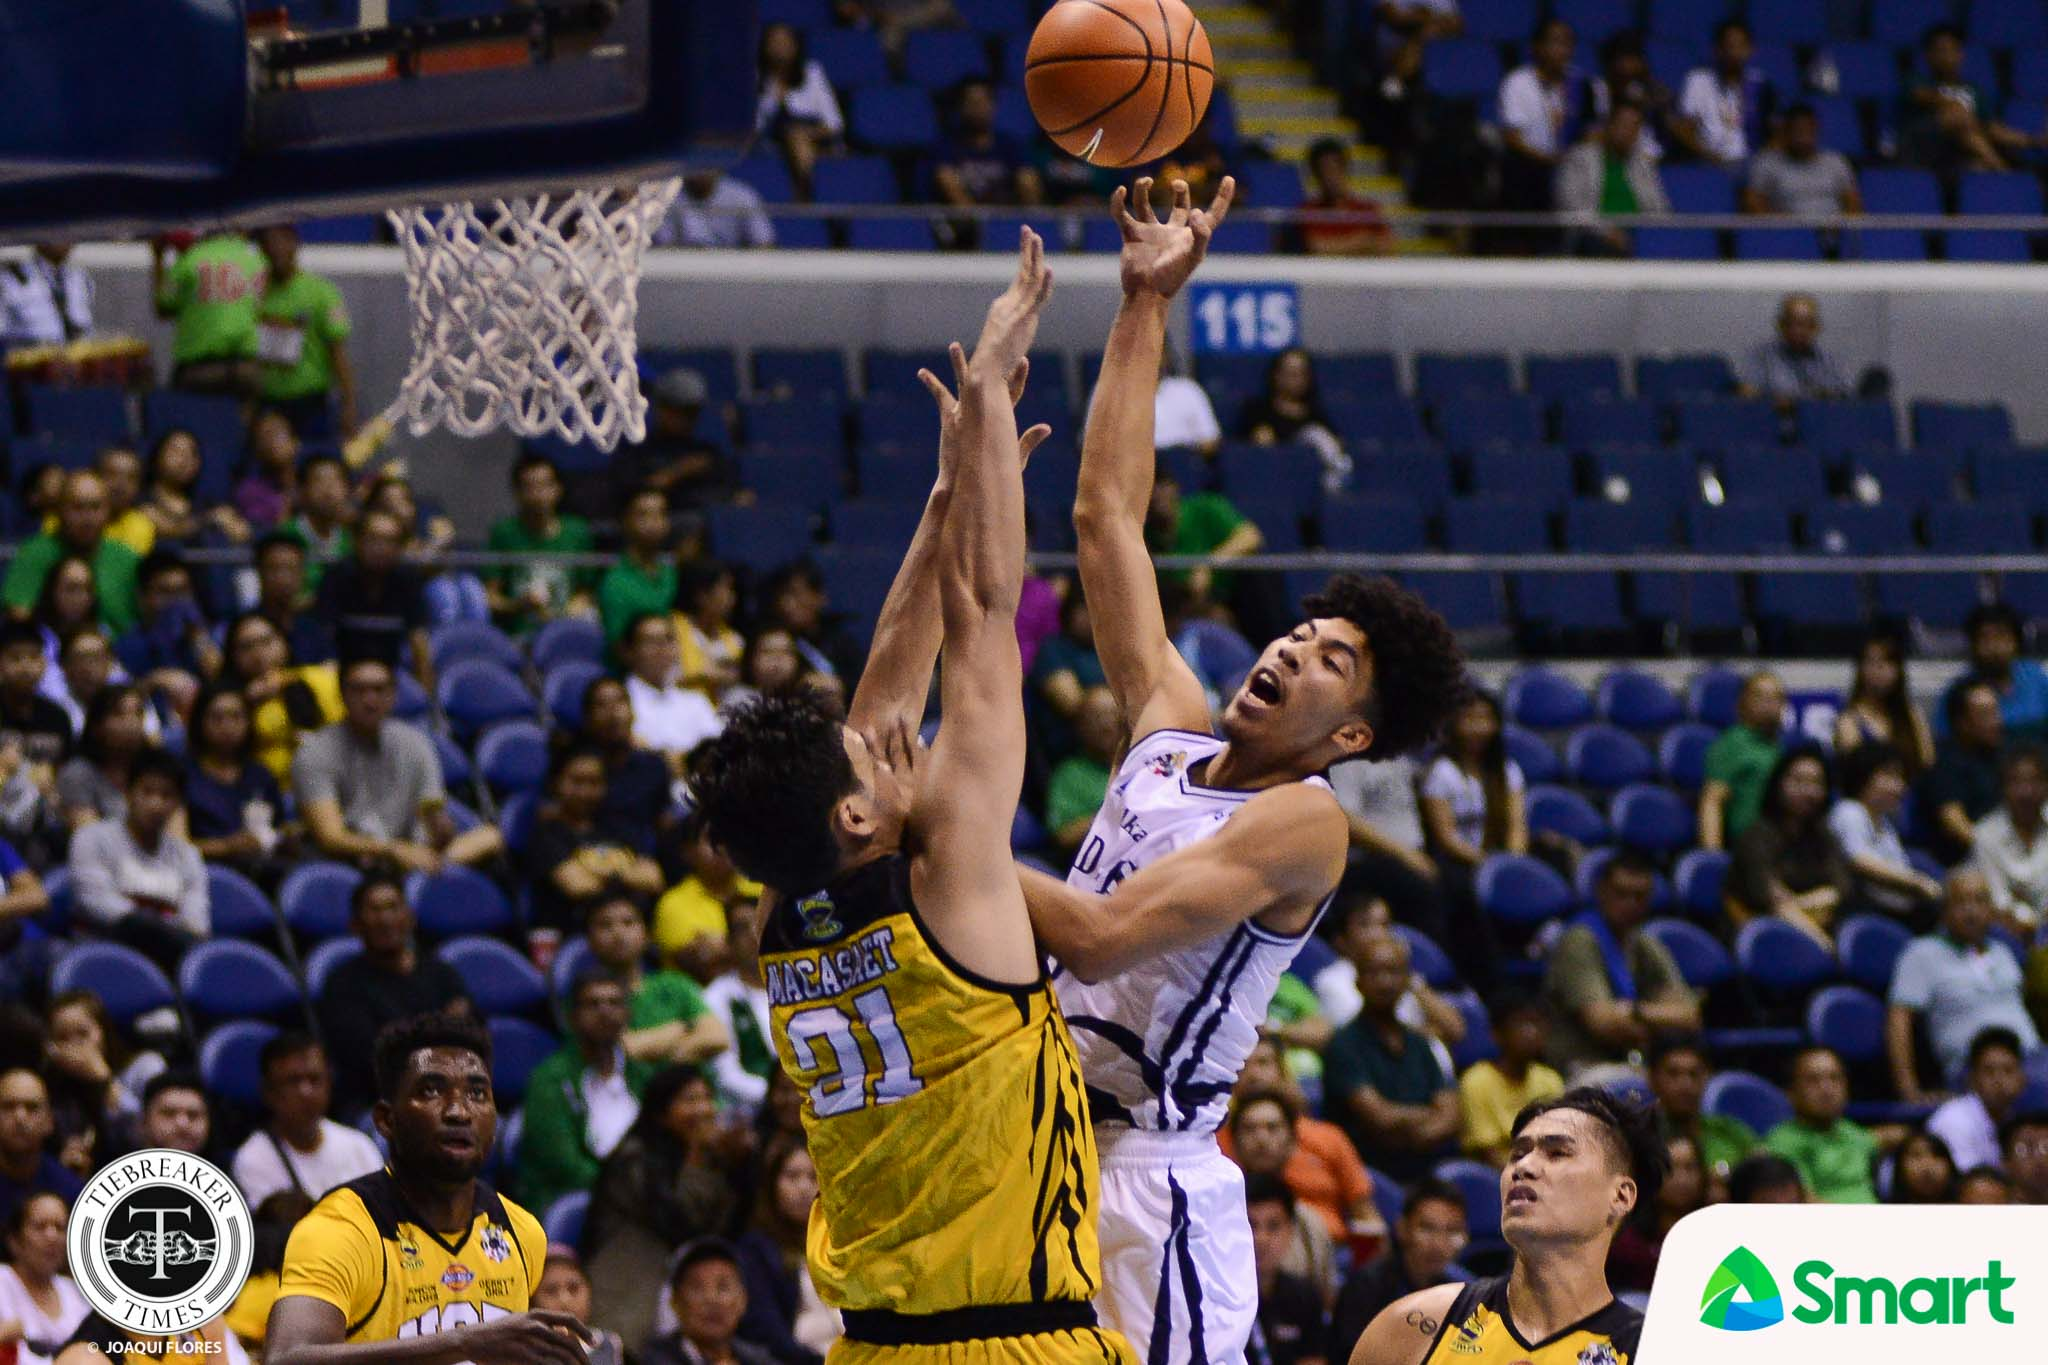 Philippine Sports News - Tiebreaker Times After throwing down best dunk so far, Hill now waiting on Manganti to follow suit AdU Basketball News UAAP  UAAP Season 80 Men's Basketball UAAP Season 80 Tyrus Hill Sean Manganti Adamson Men's Basketball